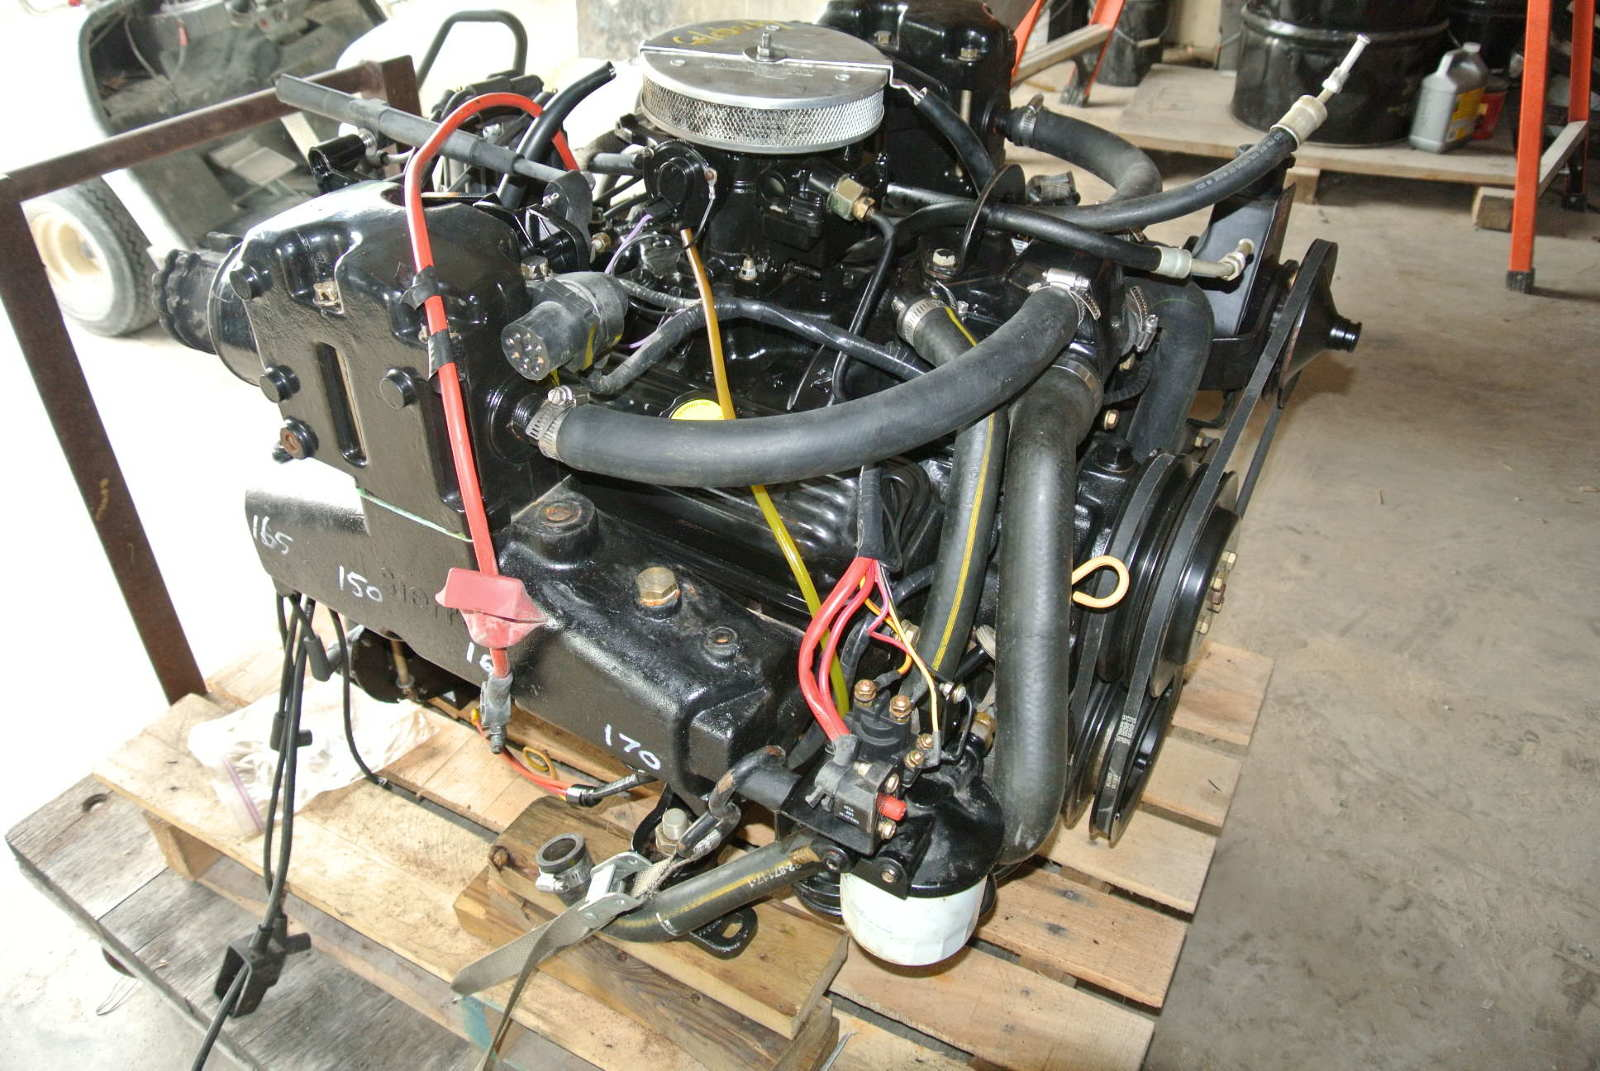 5364 mercruiser 50 engine v8 chevy 305 motor complete plug n go mercruiser 5 0 engine v8 chevy 305 motor complete plug n go Mercruiser Thunderbolt Ignition Wiring Diagram at n-0.co